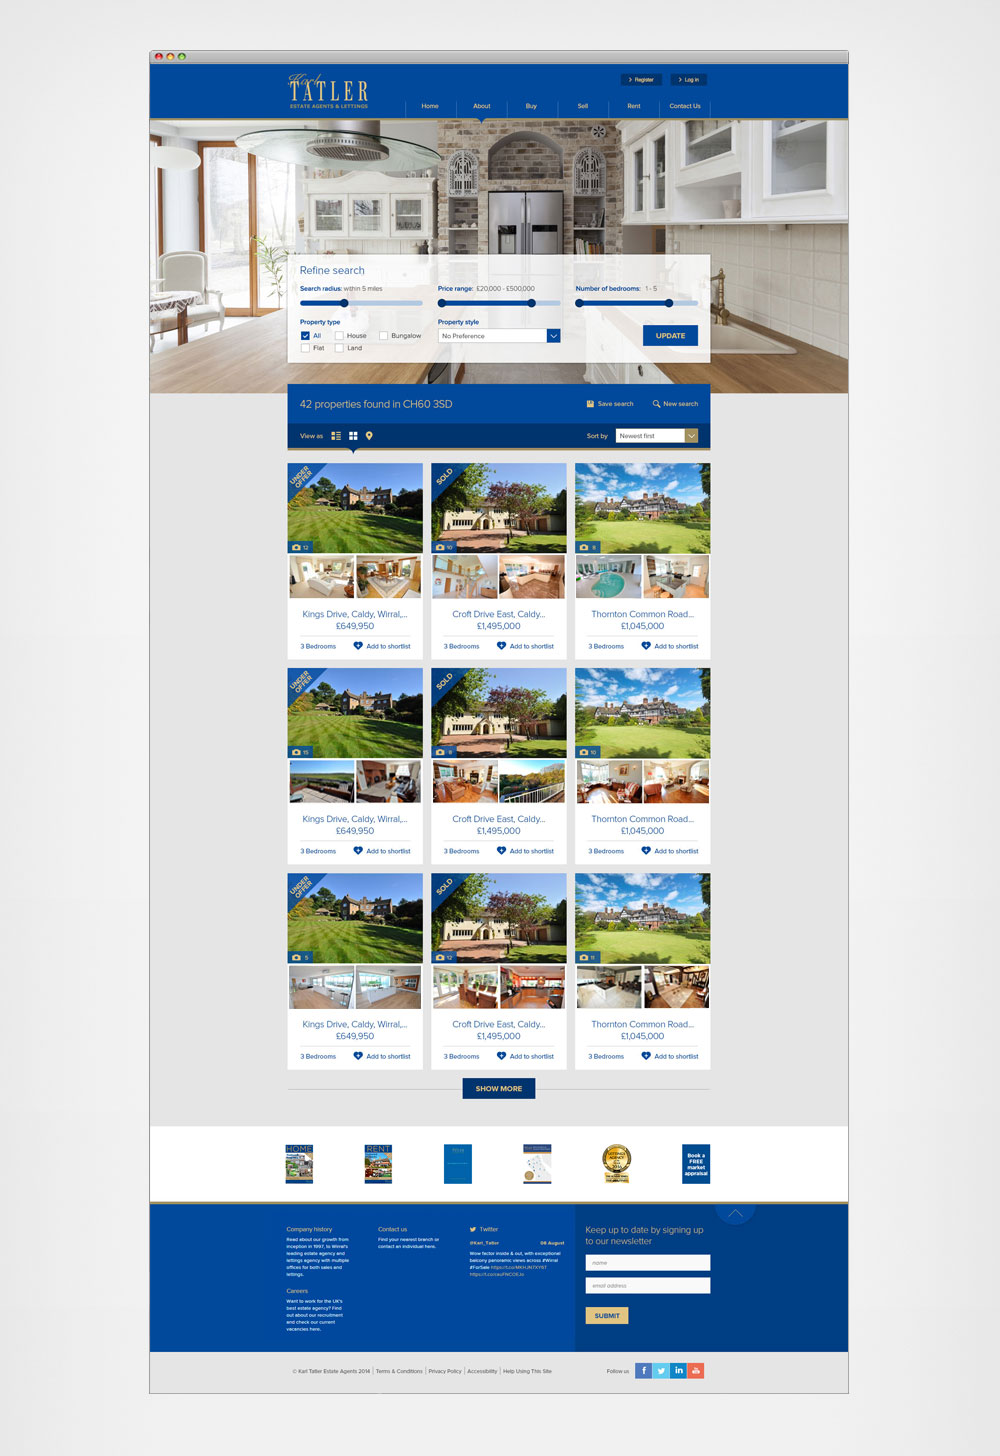 Search results page - grid view